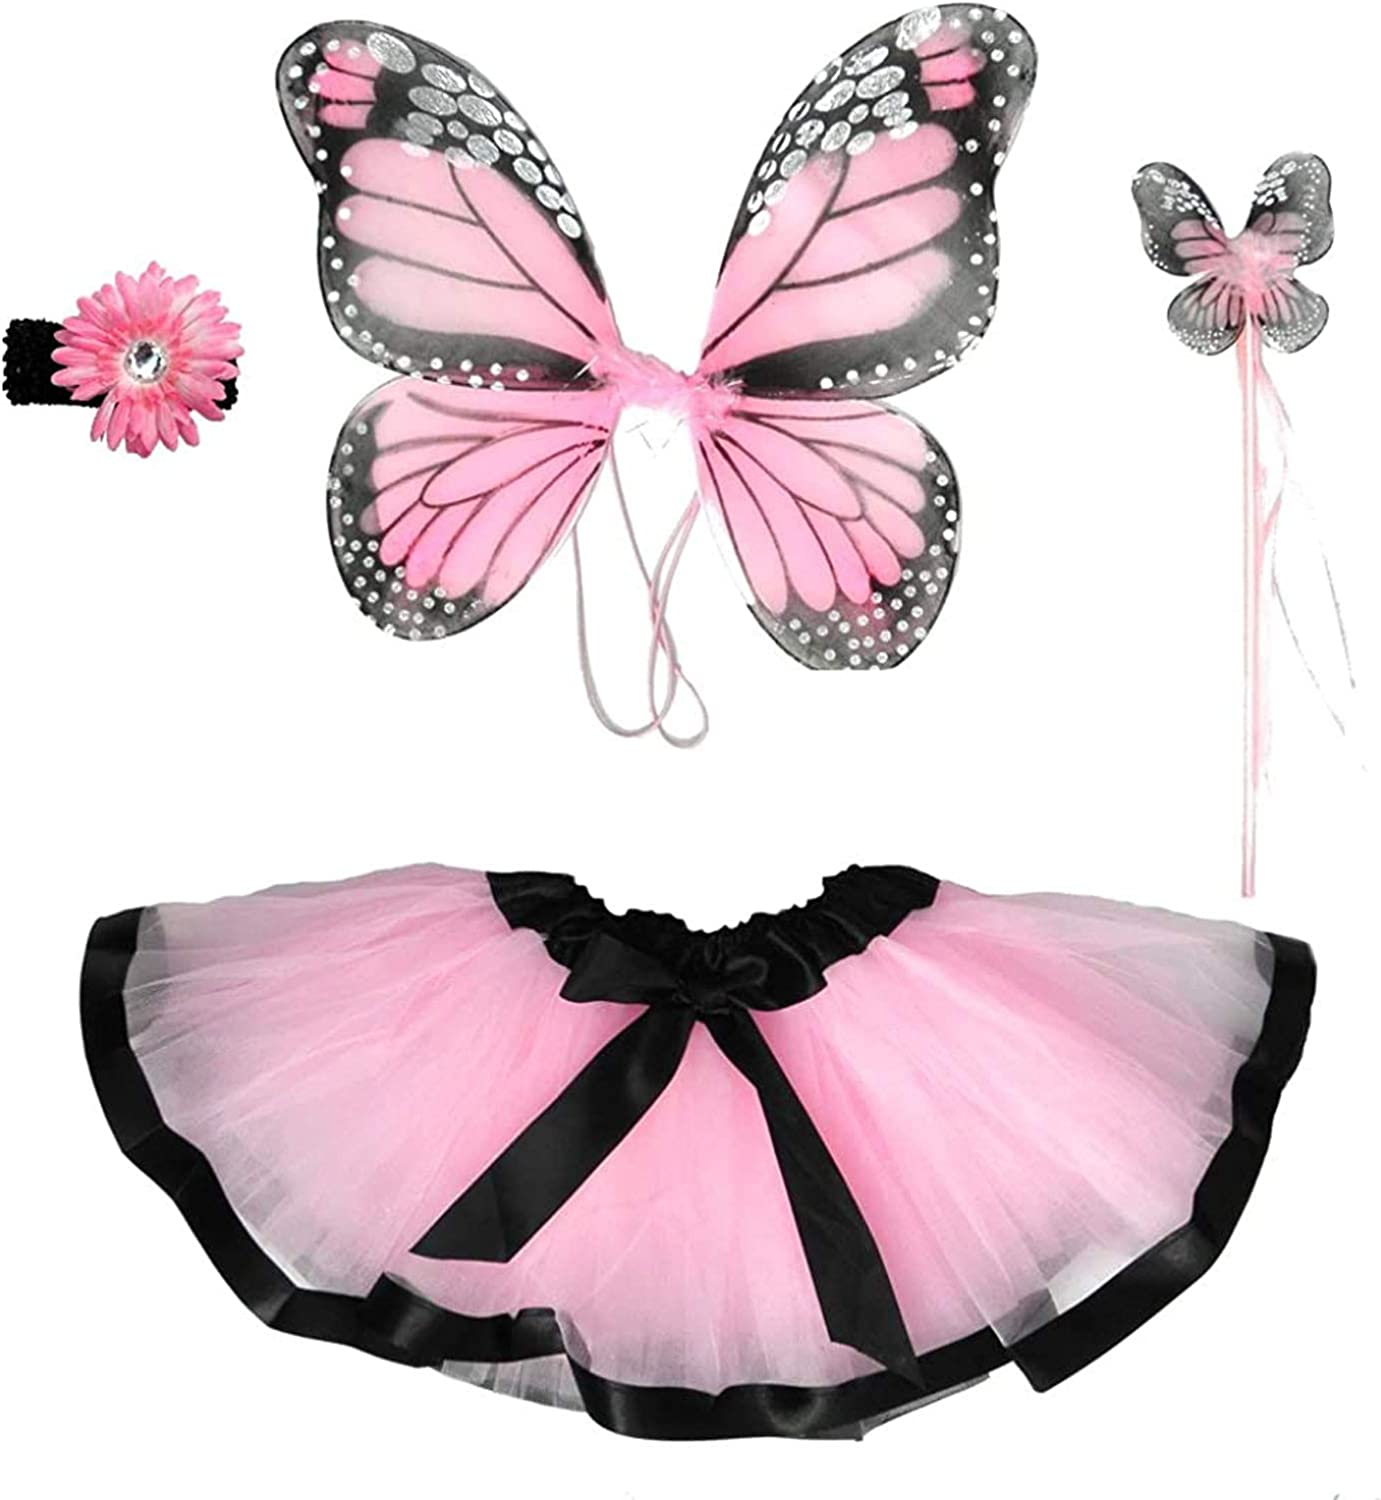 Enchantly Fairy Costume - Fairy Wings for Girls - Butterfly Costume for Girls - 4 Piece Set Monarch Butterfly